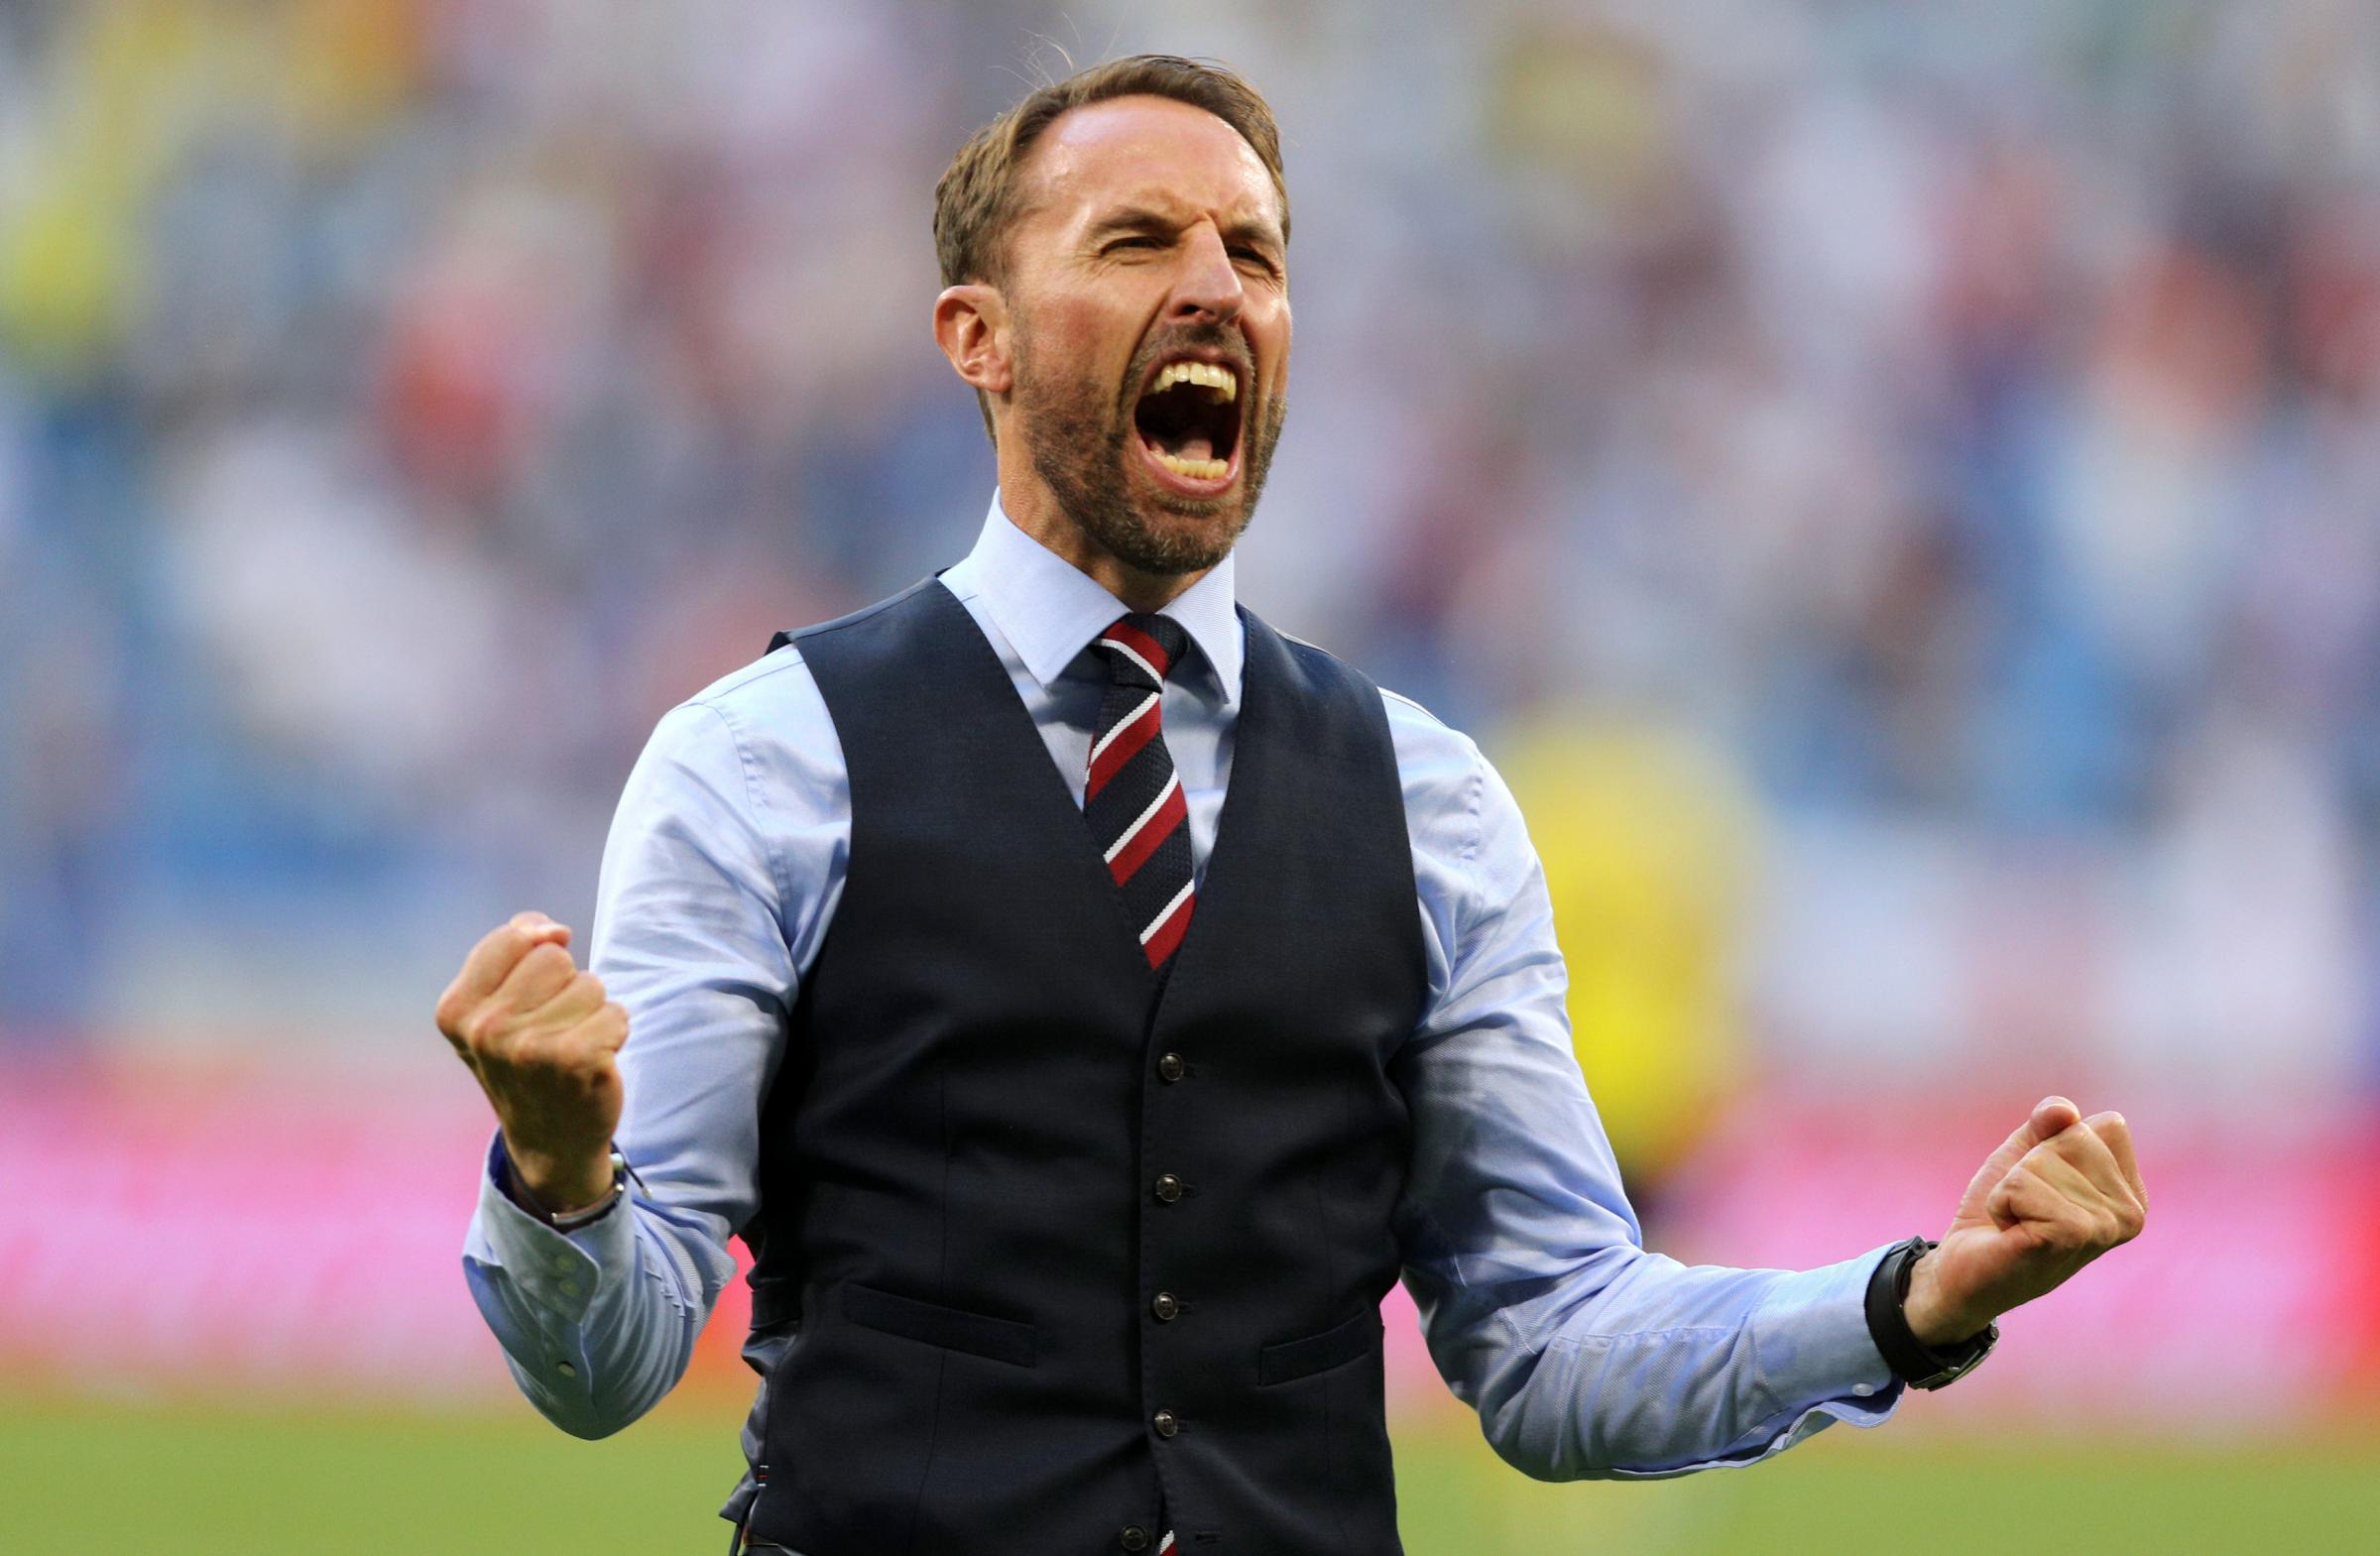 England manager Gareth Southgate. Owen Humphreys/ PA Wire